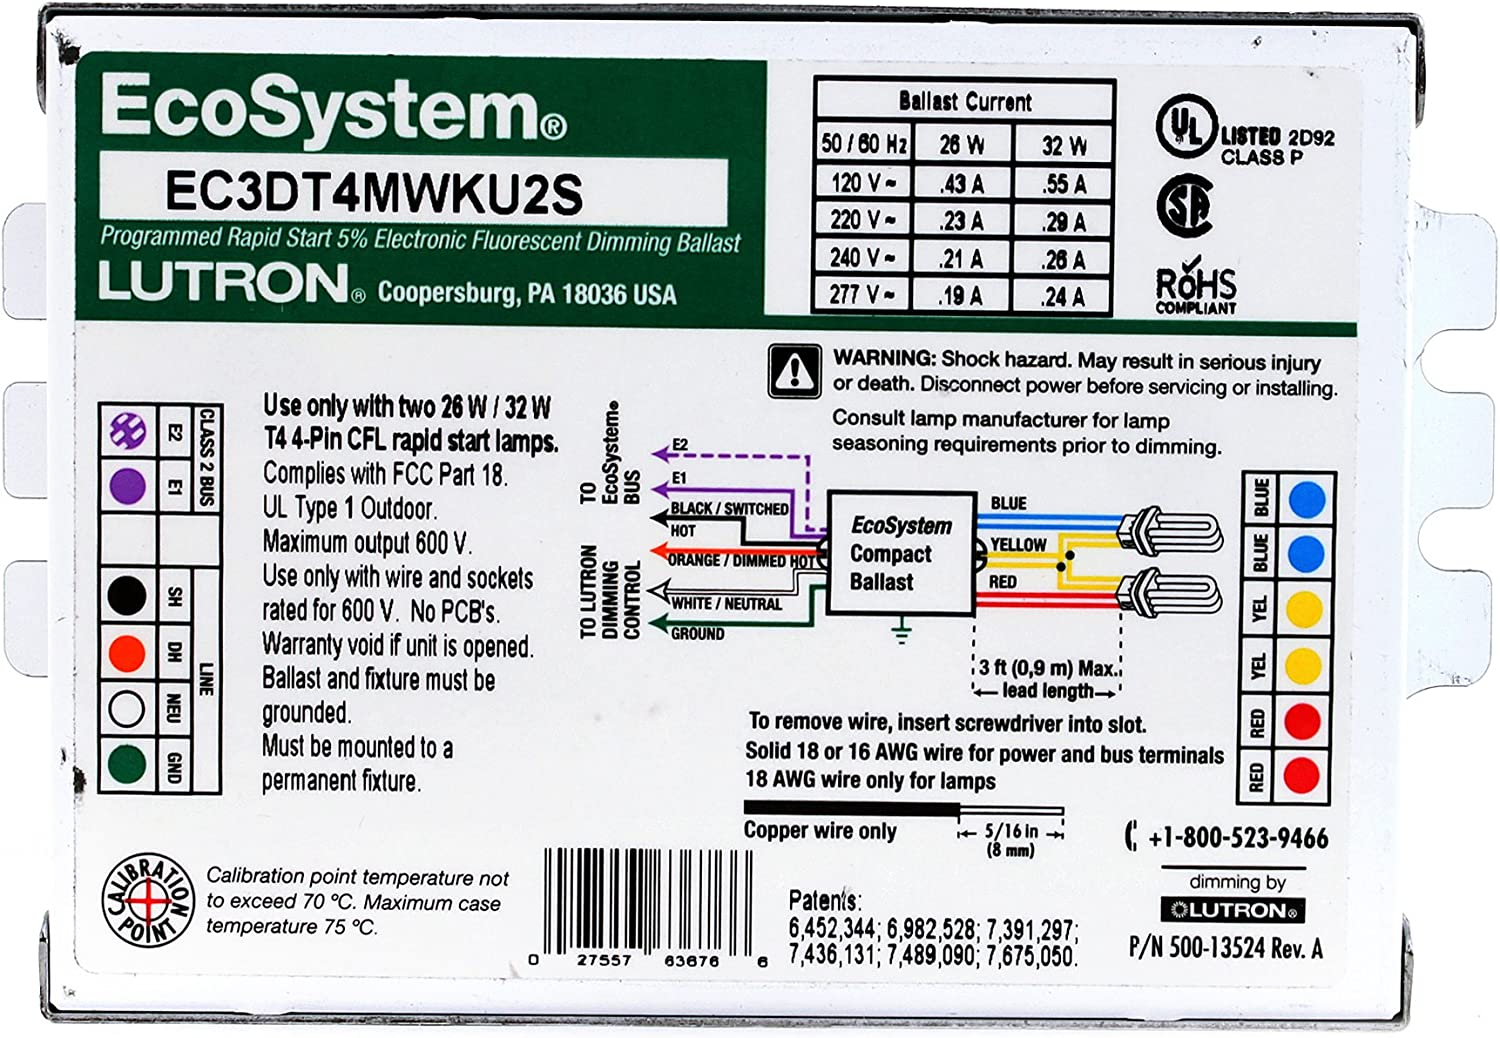 Lutron EC3DT4MWKU2S, Dimming Compact Fluorescent Ballast, 120V: Electrical  Ballasts: Amazon.com: Home ImprovementAmazon.com